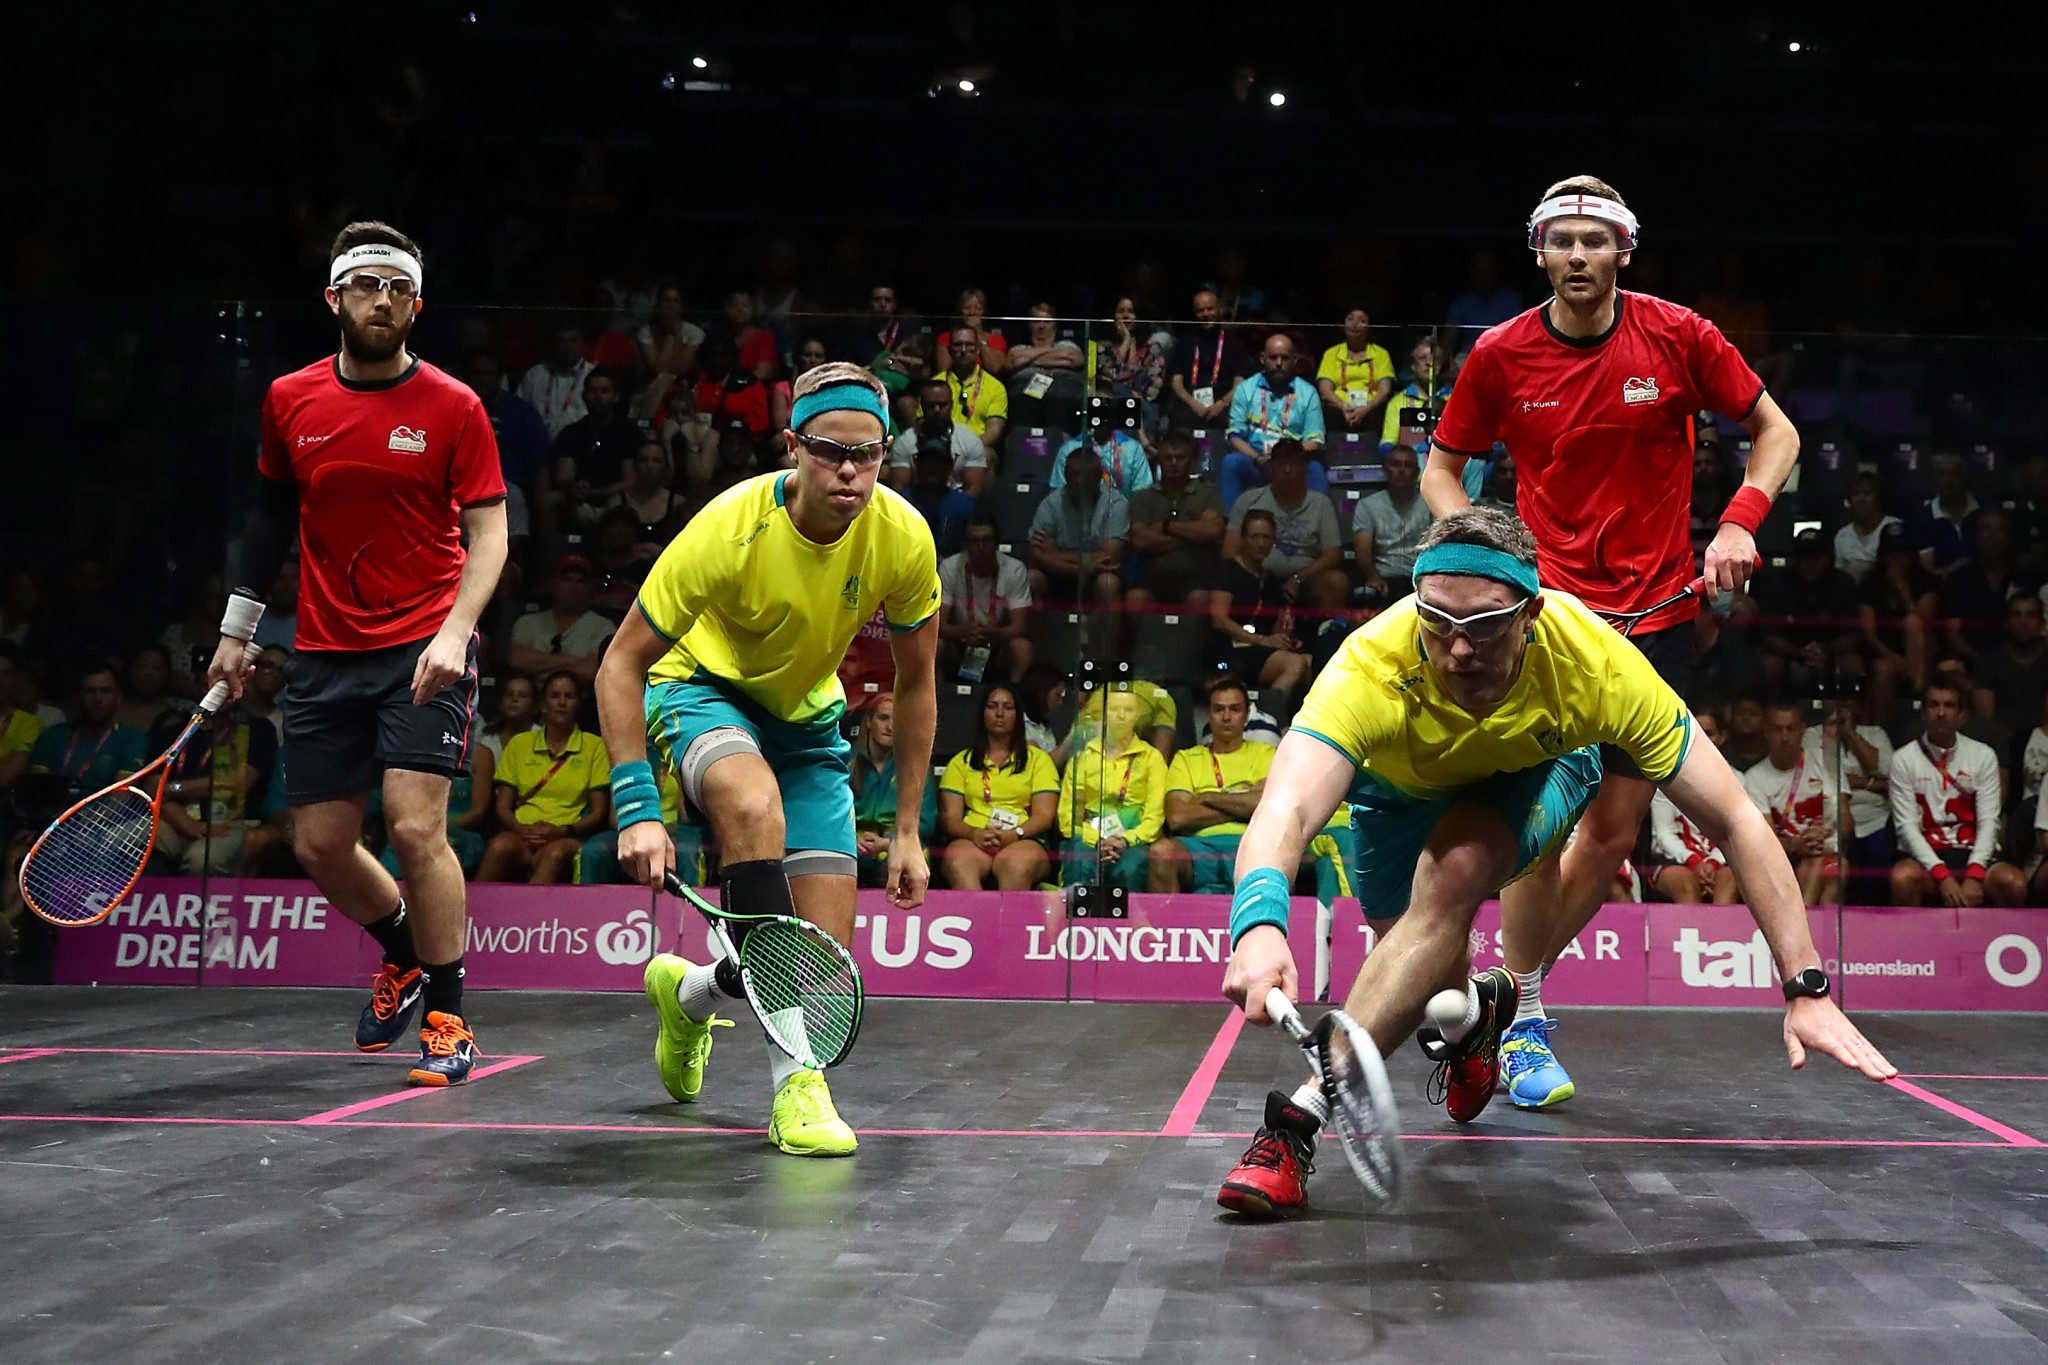 Palmer justifies decision to come out of retirement with men's doubles triumph at Gold Coast 2018